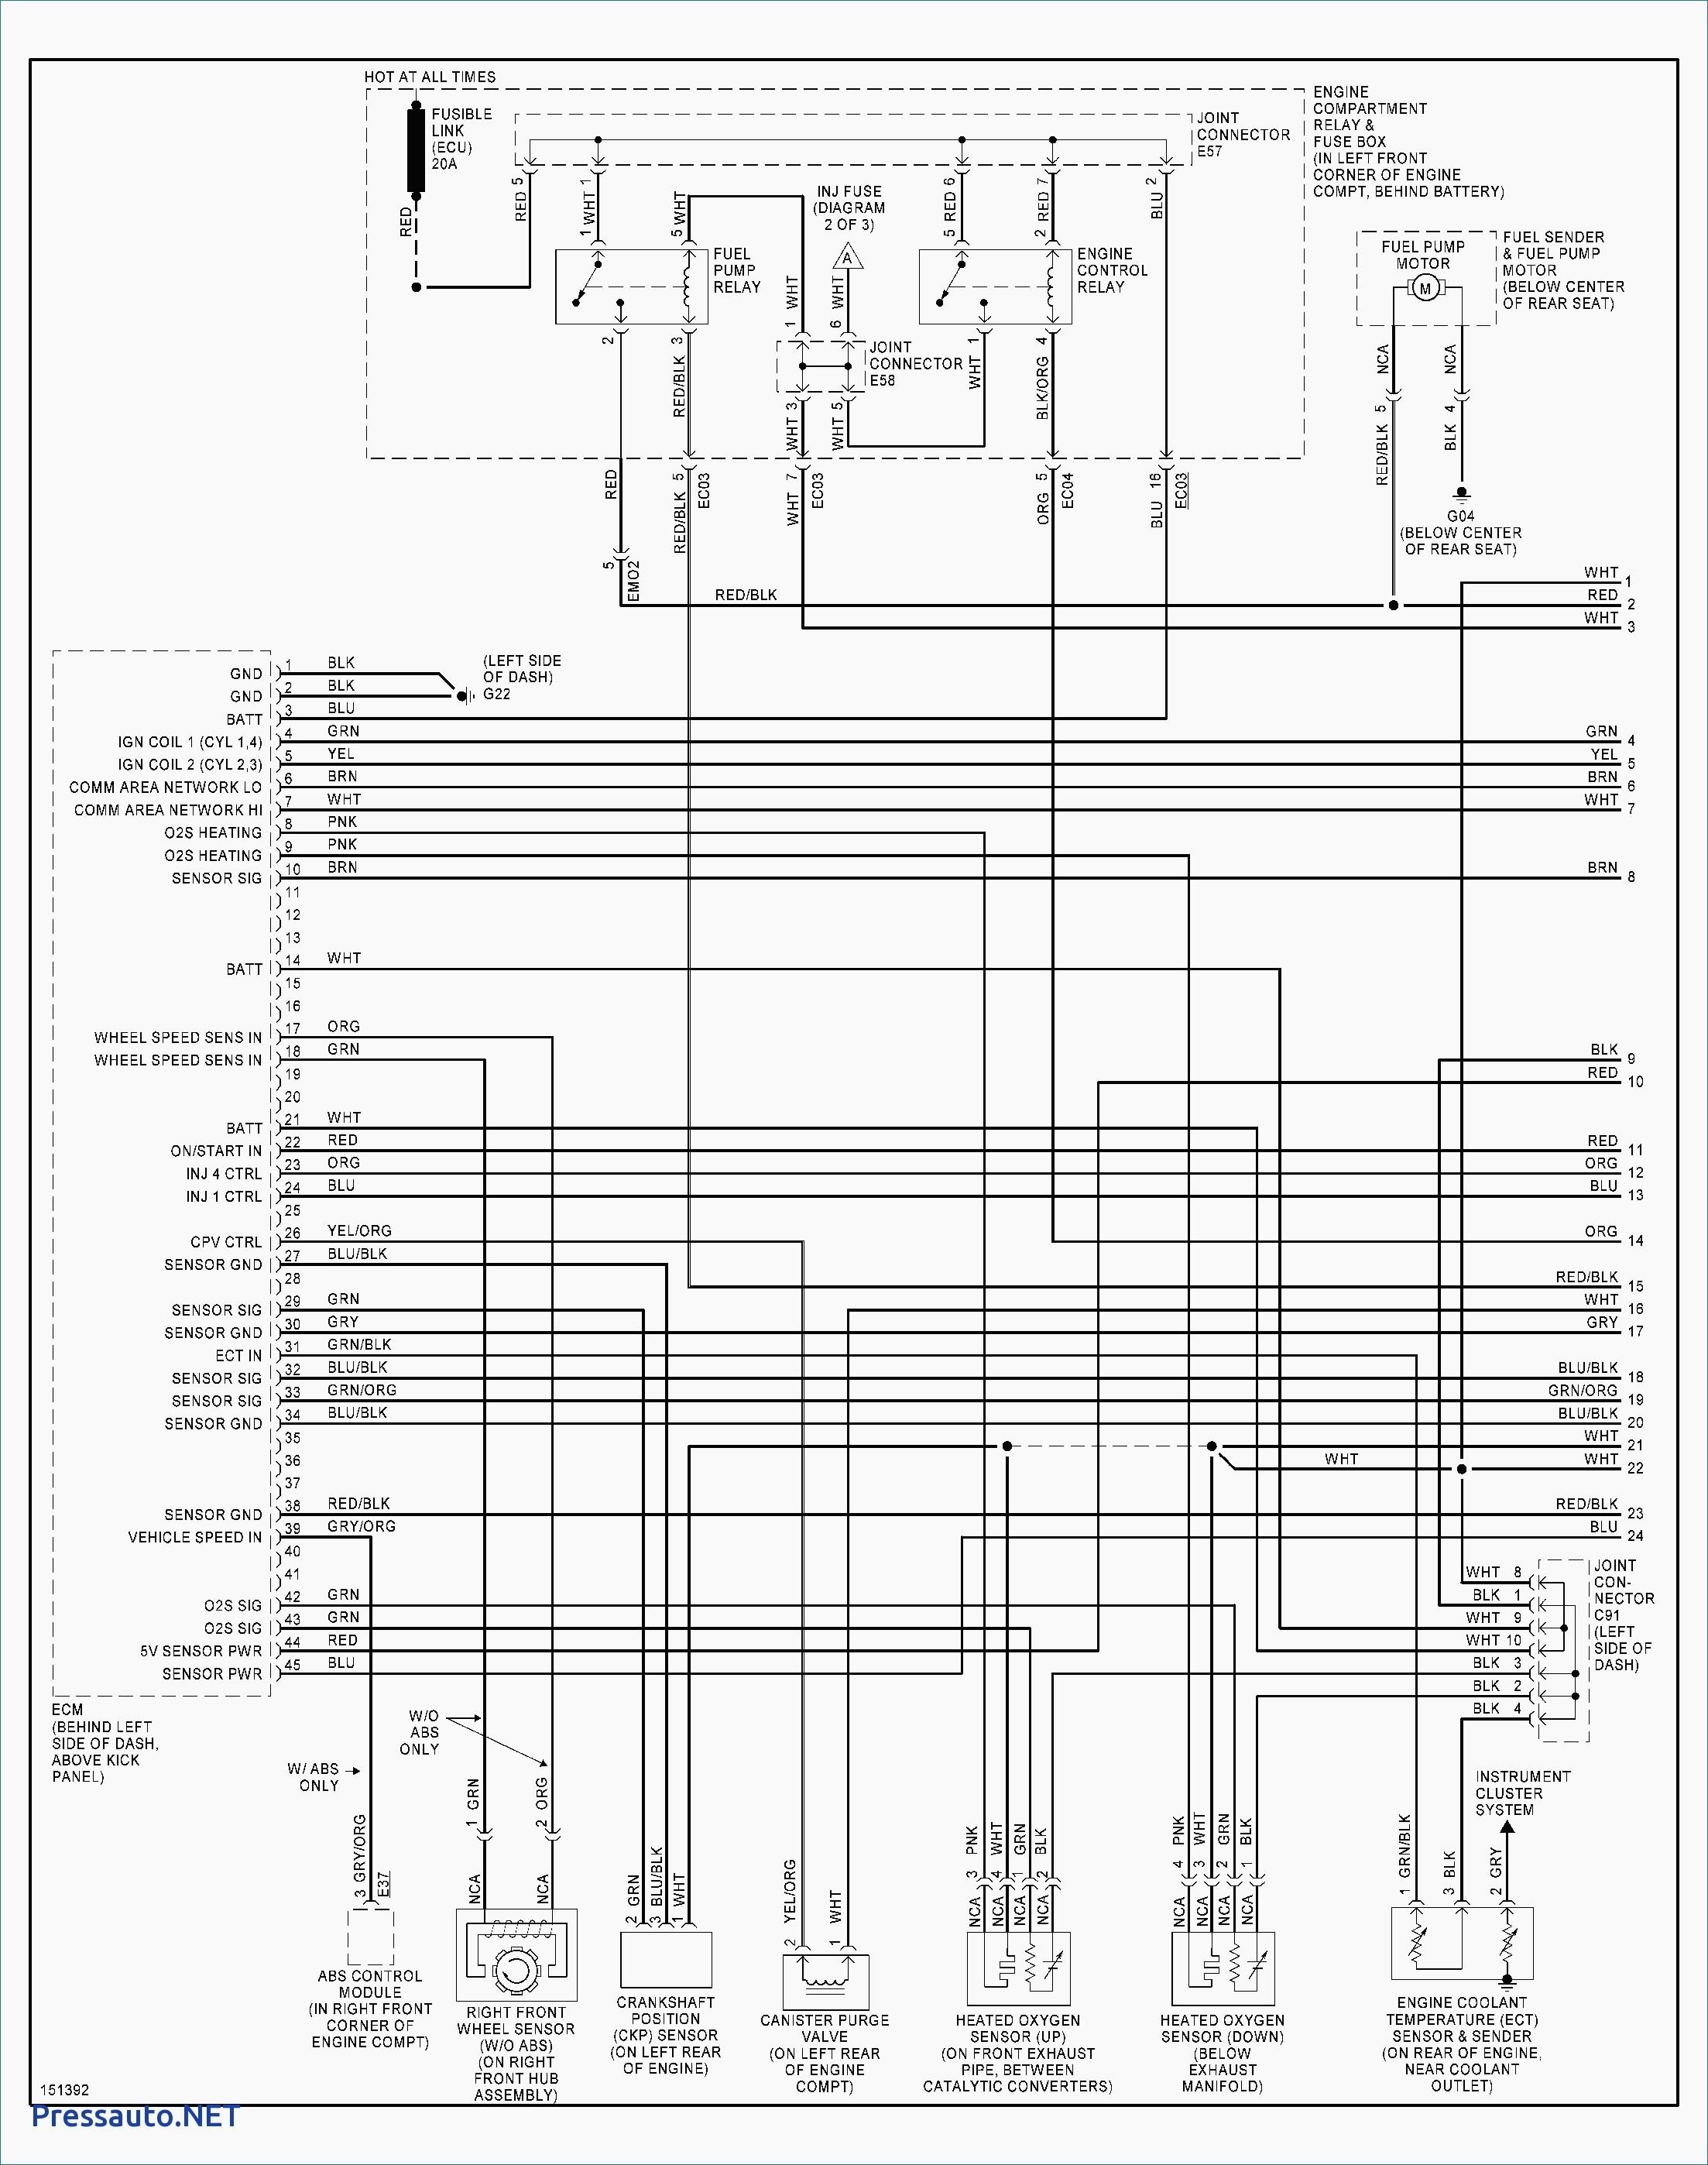 OW_8436] Switch Wiring Diagram Moreover 2012 Hyundai Sonata Wiring Diagram  Free Diagram